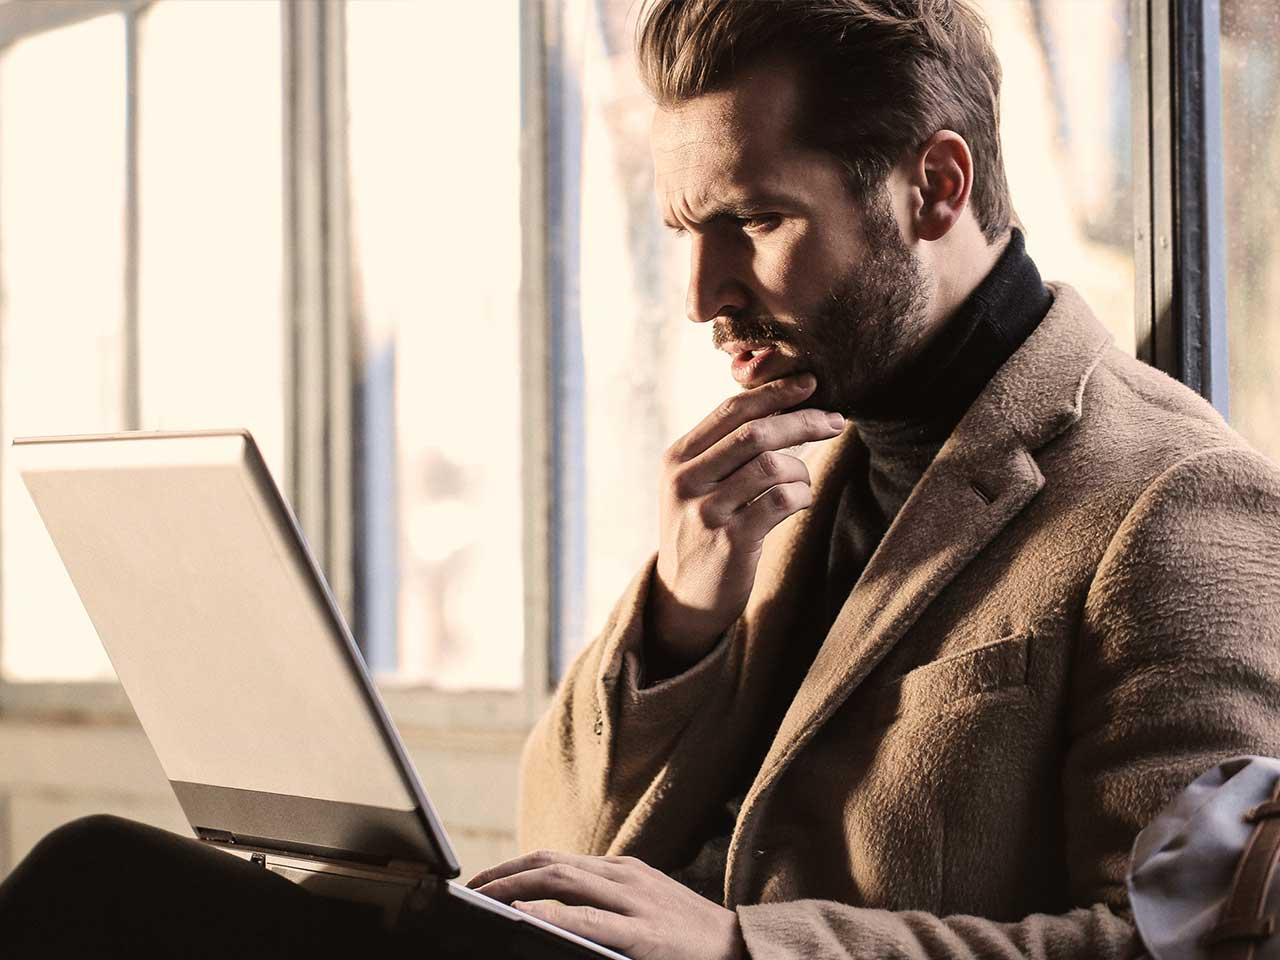 Man looking confused looking at his laptop